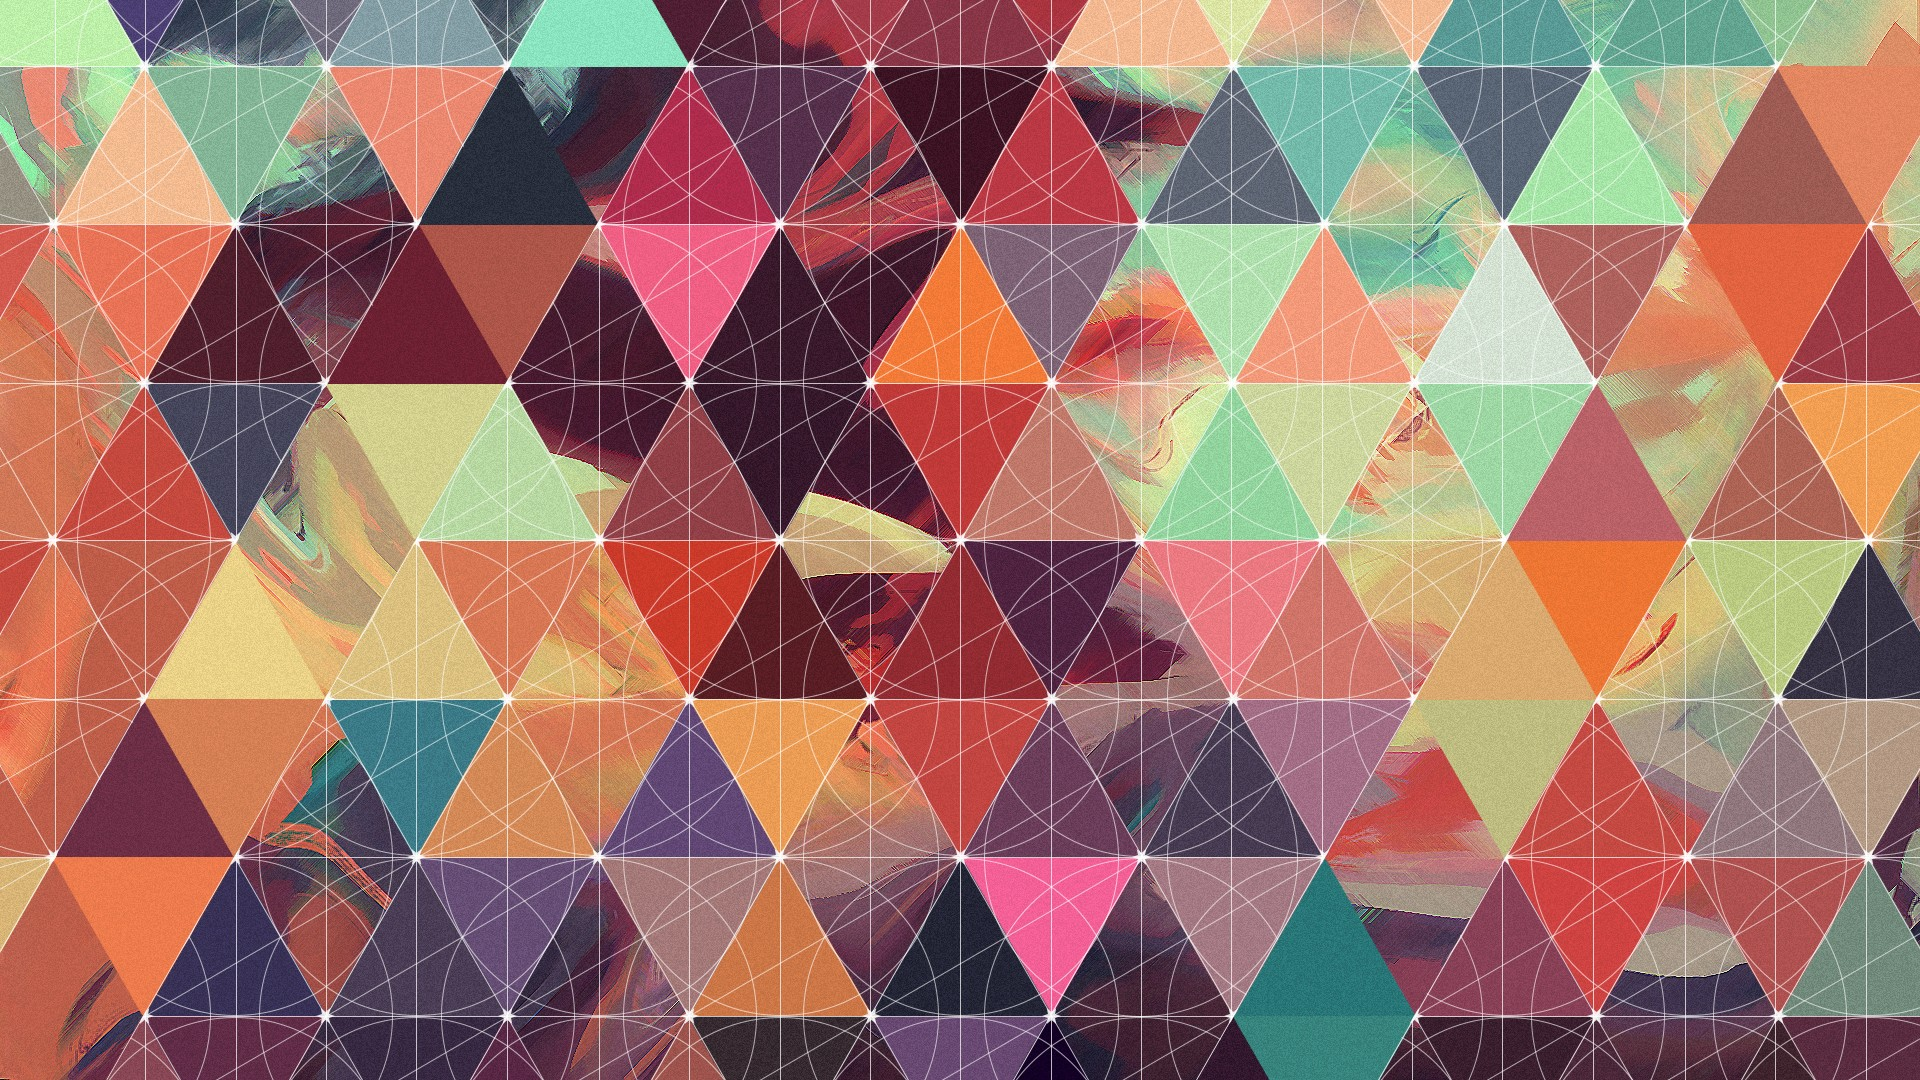 geometric wallpaper hd  Geometric wallpaper ·① Download free cool full HD backgrounds for ...